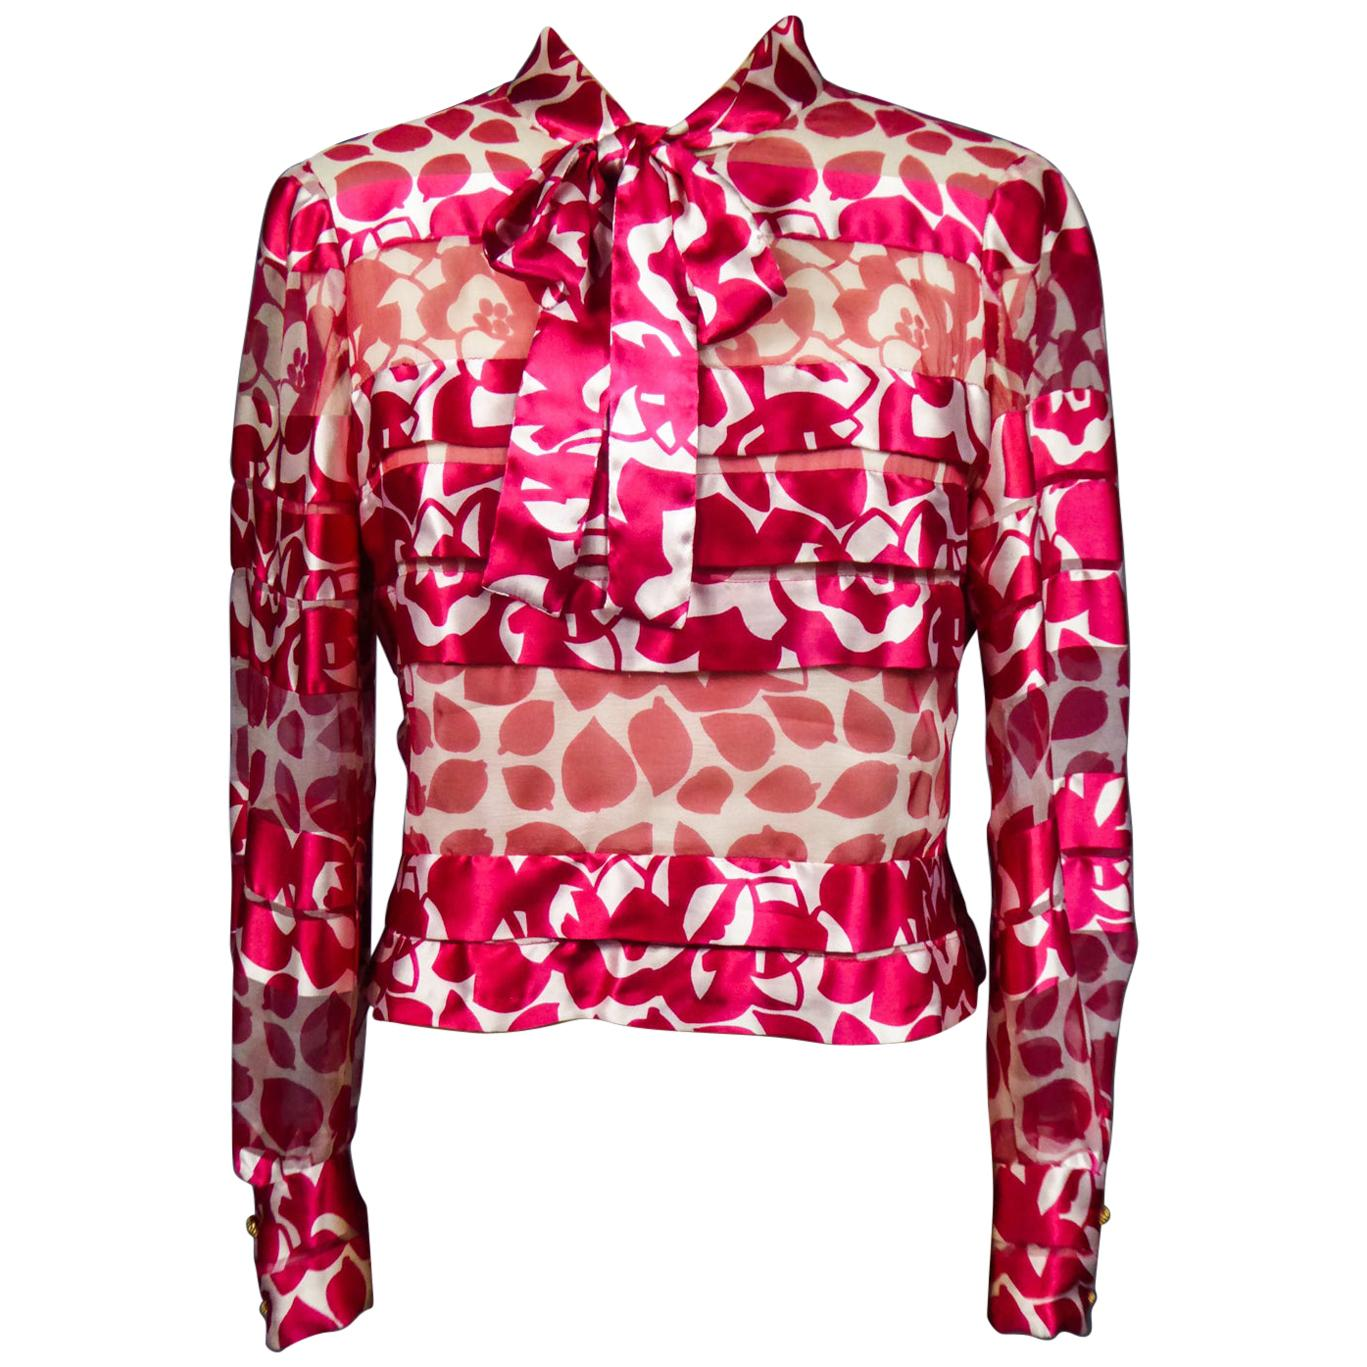 A Chanel Blouse in Printed Silk Numbered 46641 Circa 1970